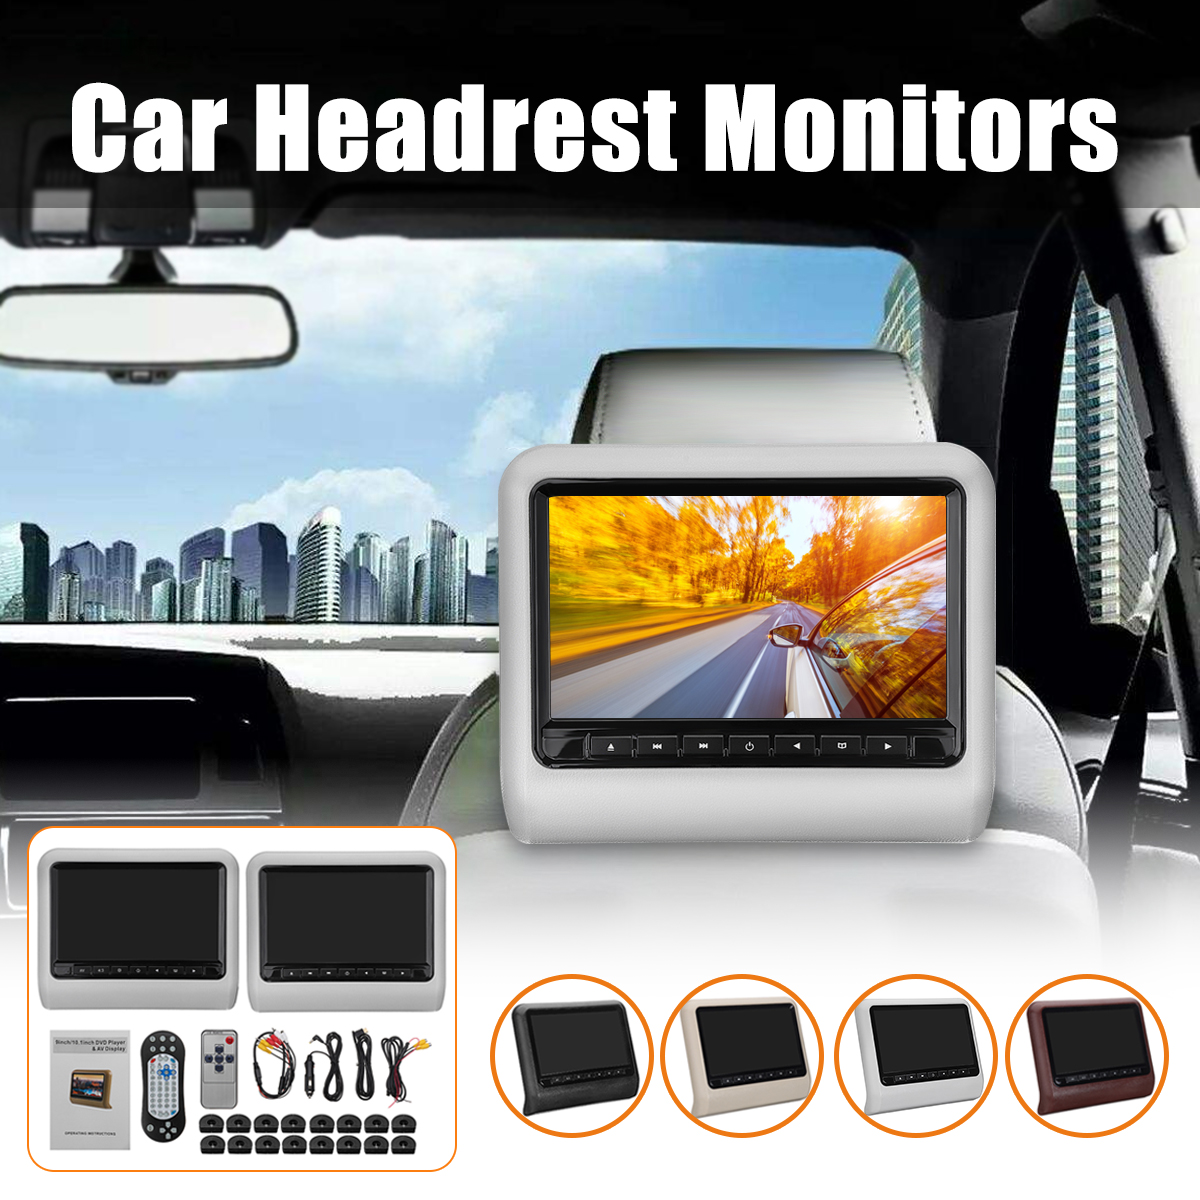 2x 9 Inch Digital Screen Car Headrest Monitor AV+DVD USB SD Player Remote Control